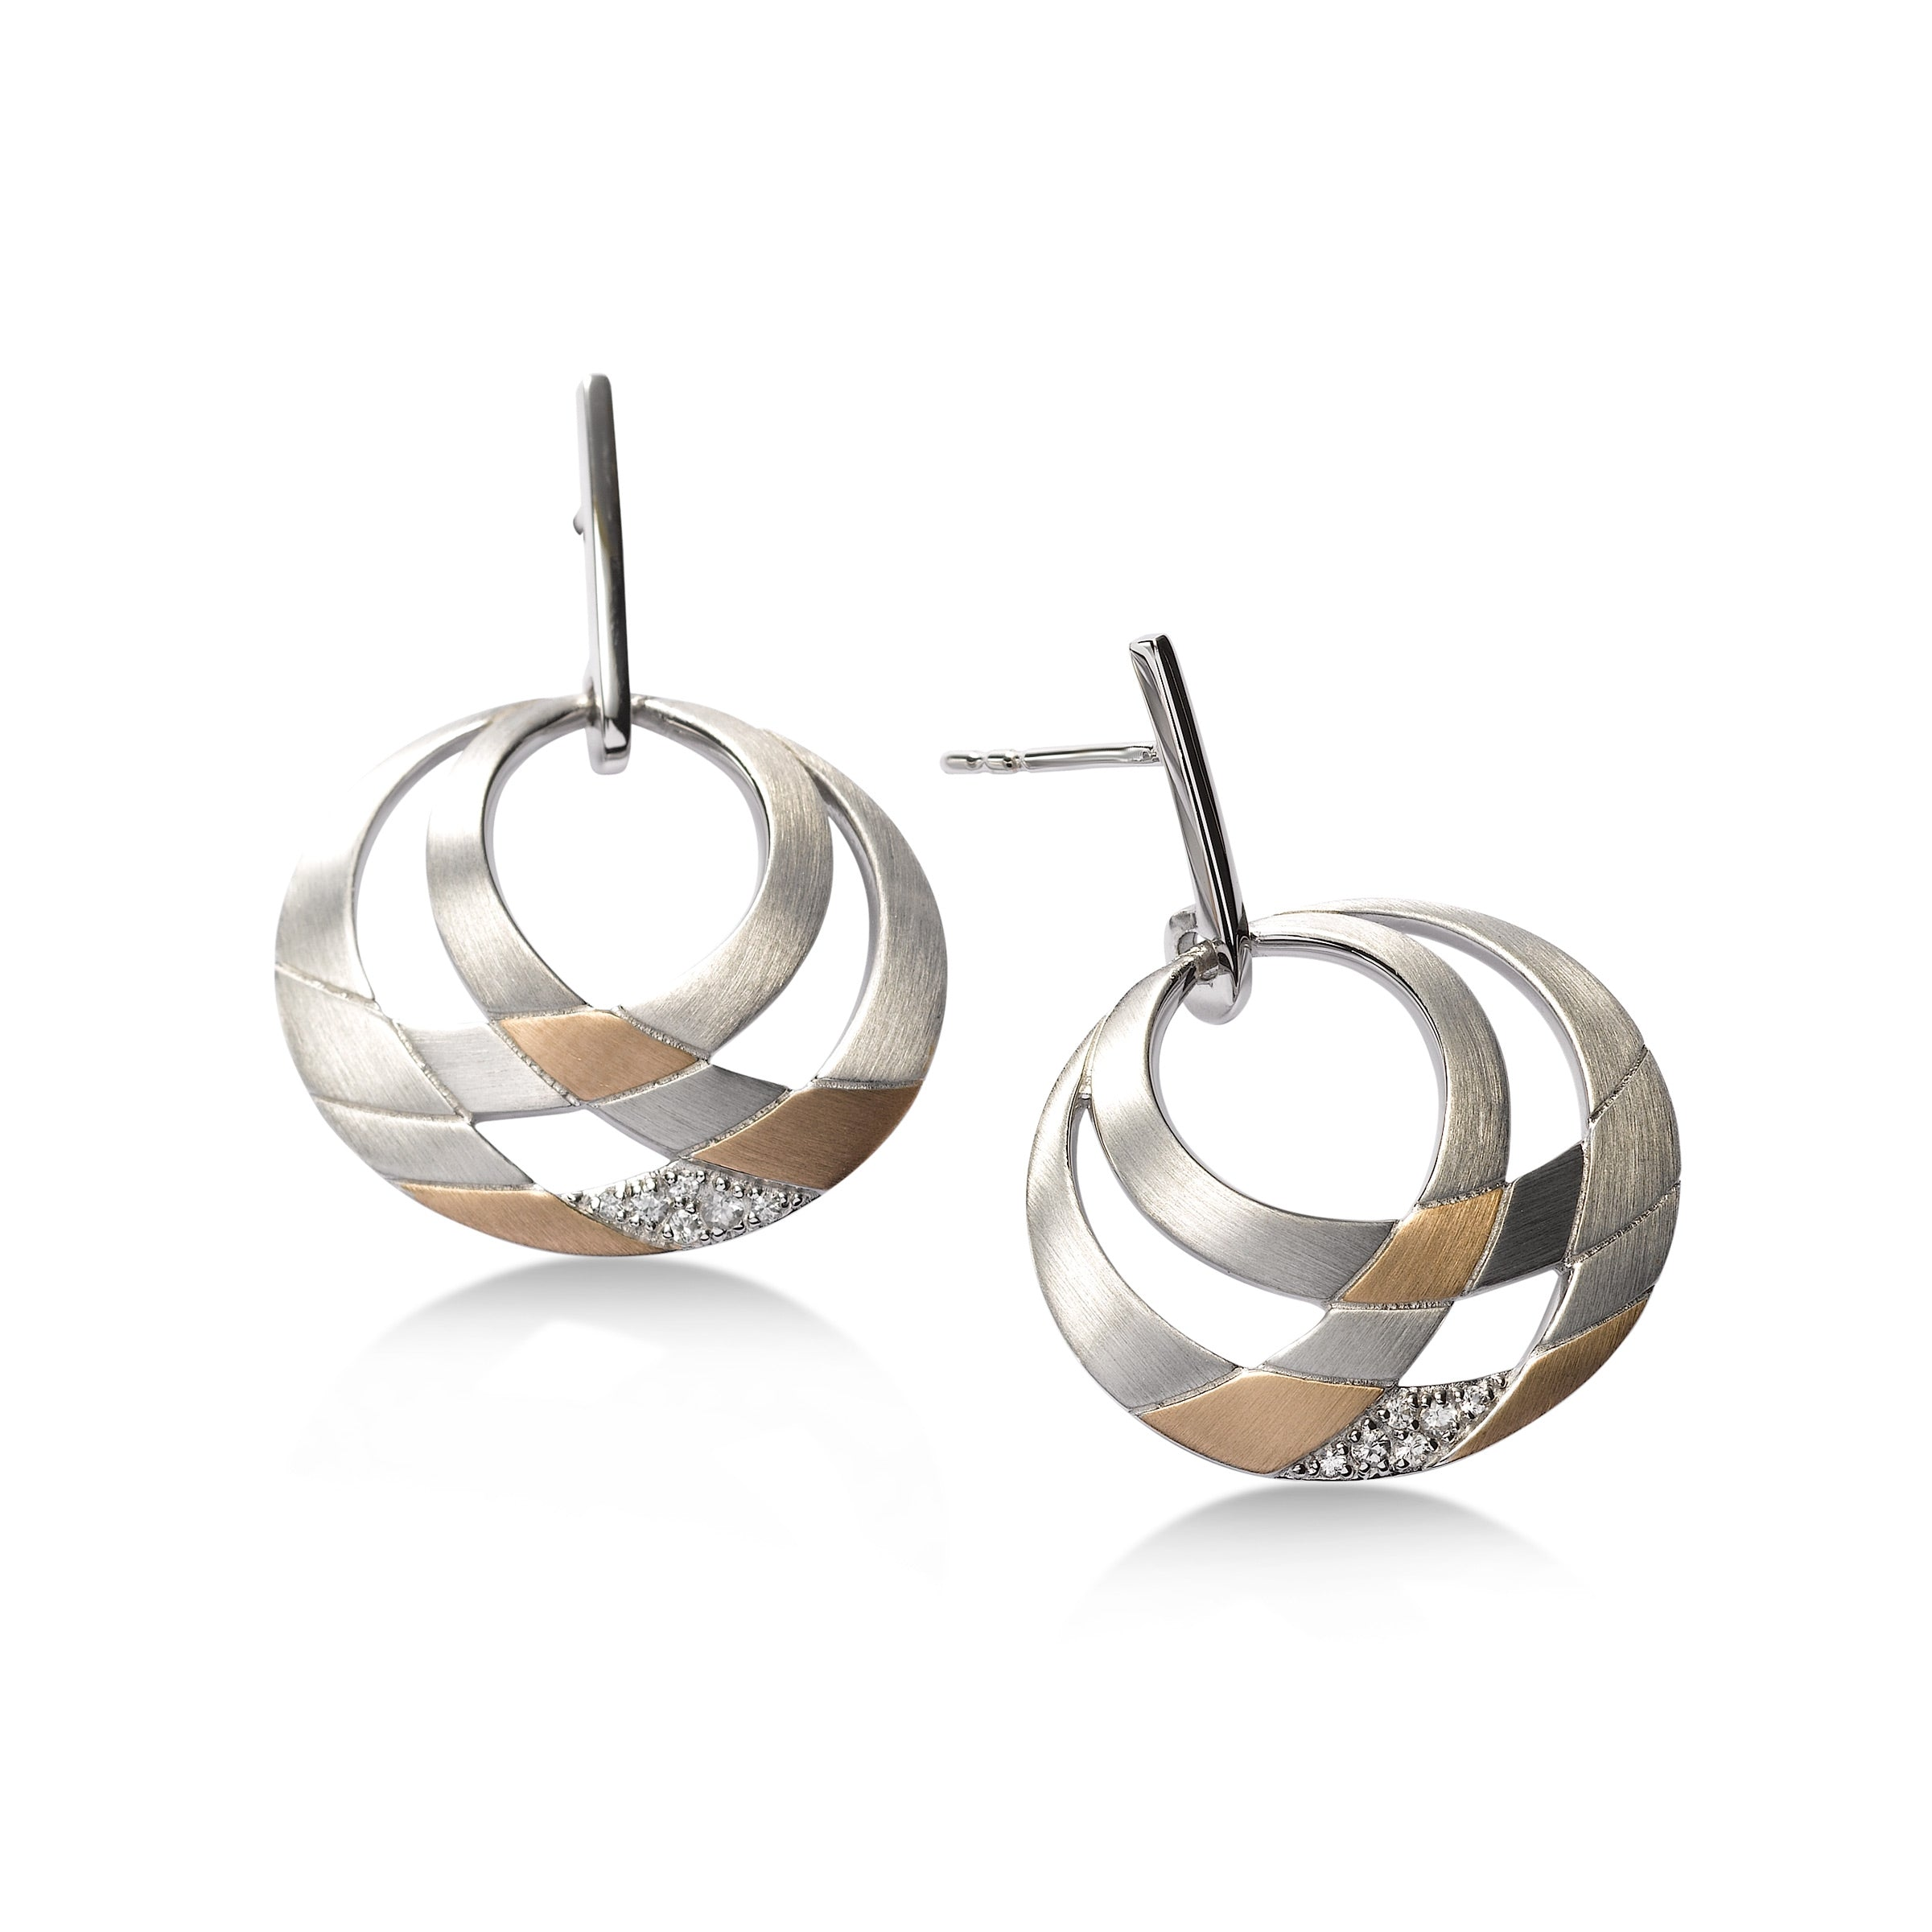 Two Tone Open Design Earrings, Sterling Silver with Rose Gold Plating